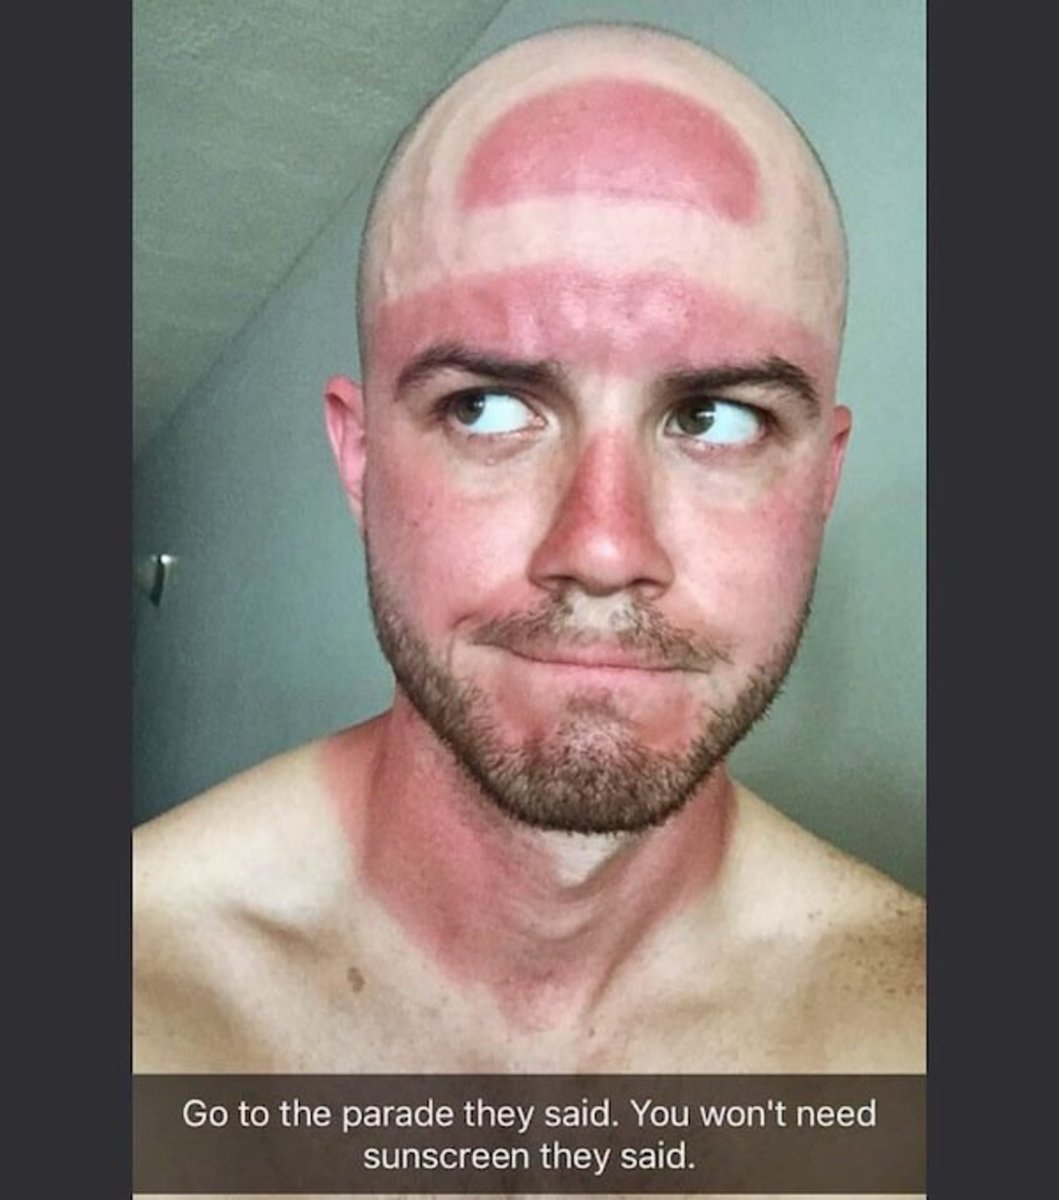 funny-photos-of-worst-sunburns-ever-fail-no-sunscreen